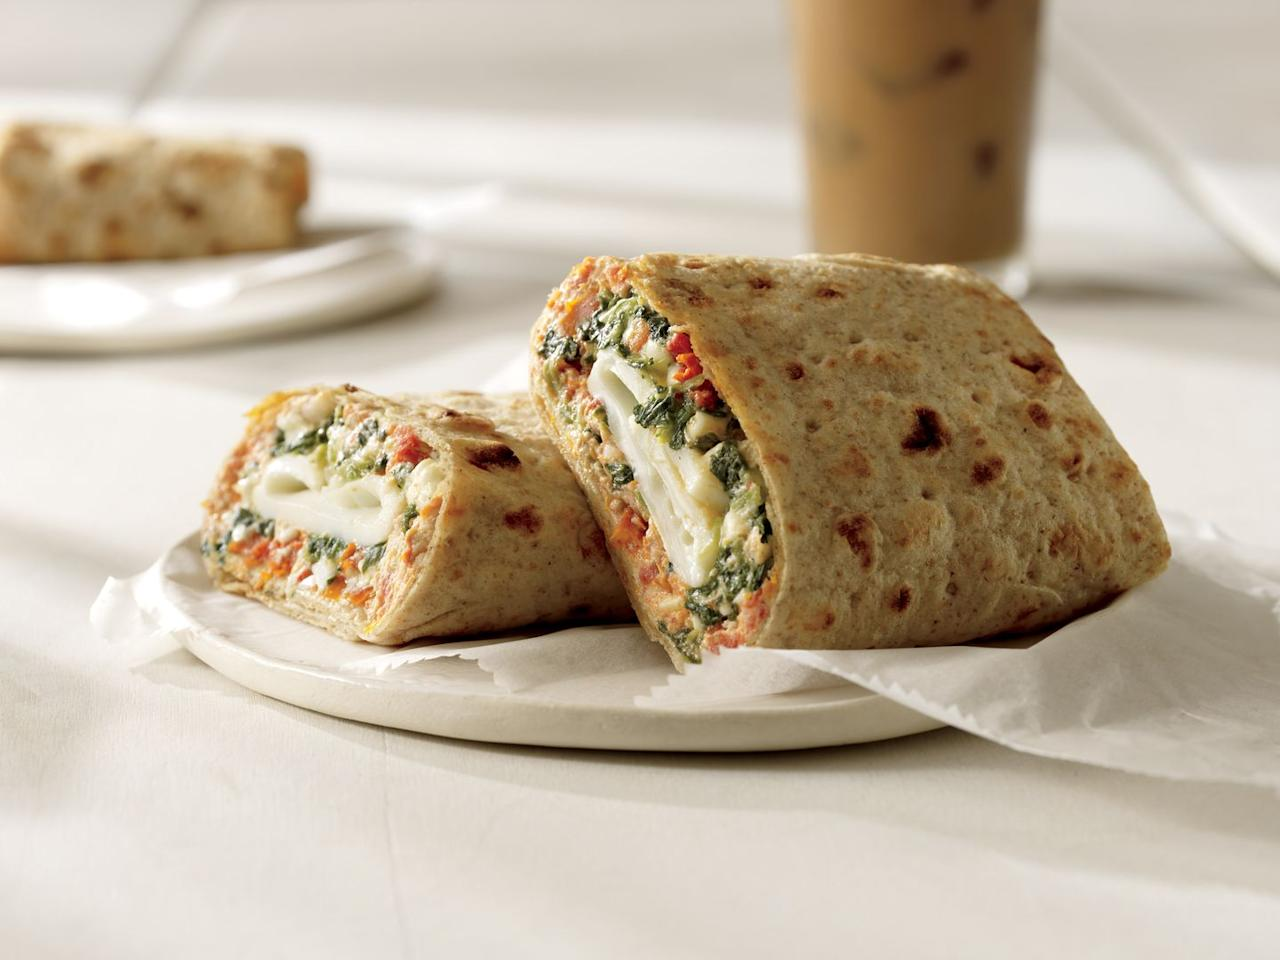 """<p>Thanks to a substantial selection of ready-to-go meals, Starbucks is a great option when you're pressed for time. """"I go for Starbucks, which has a good selection of breakfast items in addition to my go-to order of an Americano with steamed non-fat milk,"""" says <a href=""""http://jessicaiveyrdn.com/"""">Jessica Ivey</a>, RDN.</p><p><strong>WHAT TO EAT</strong></p><p><strong>Spinach, Feta And Cage-Free Egg White Breakfast Wrap: </strong><strong></strong>""""This is one of my favorites because it's packed with 15 grams of protein to keep me full and satisfied,"""" says Ivey.</p><p><a href=""""https://www.myfitnesspal.com/food/calories/41680085""""><em>Per serving</em></a><em>: 290 calories, 10 g fat (3 g saturated), 33 g carbs, 4 g sugar, 830 mg sodium, 6 g fiber, 9 g protein</em></p><p><strong><em></em>Hearty Blueberry Oatmeal: </strong>""""I love this because it provides five grams of filling fiber,"""" says Ivey.</p><p><a href=""""https://www.starbucks.com/menu/food/hot-breakfast/steel-cut-oatmeal-with-blueberries?foodZone=9999""""><em>Per serving</em></a><em>: 220 calories, 2.5 g fat (0.5 g saturated), 43 g carbs, 13 g sugar, 125 mg sodium, 5 g fiber, 5 g protein</em></p>"""